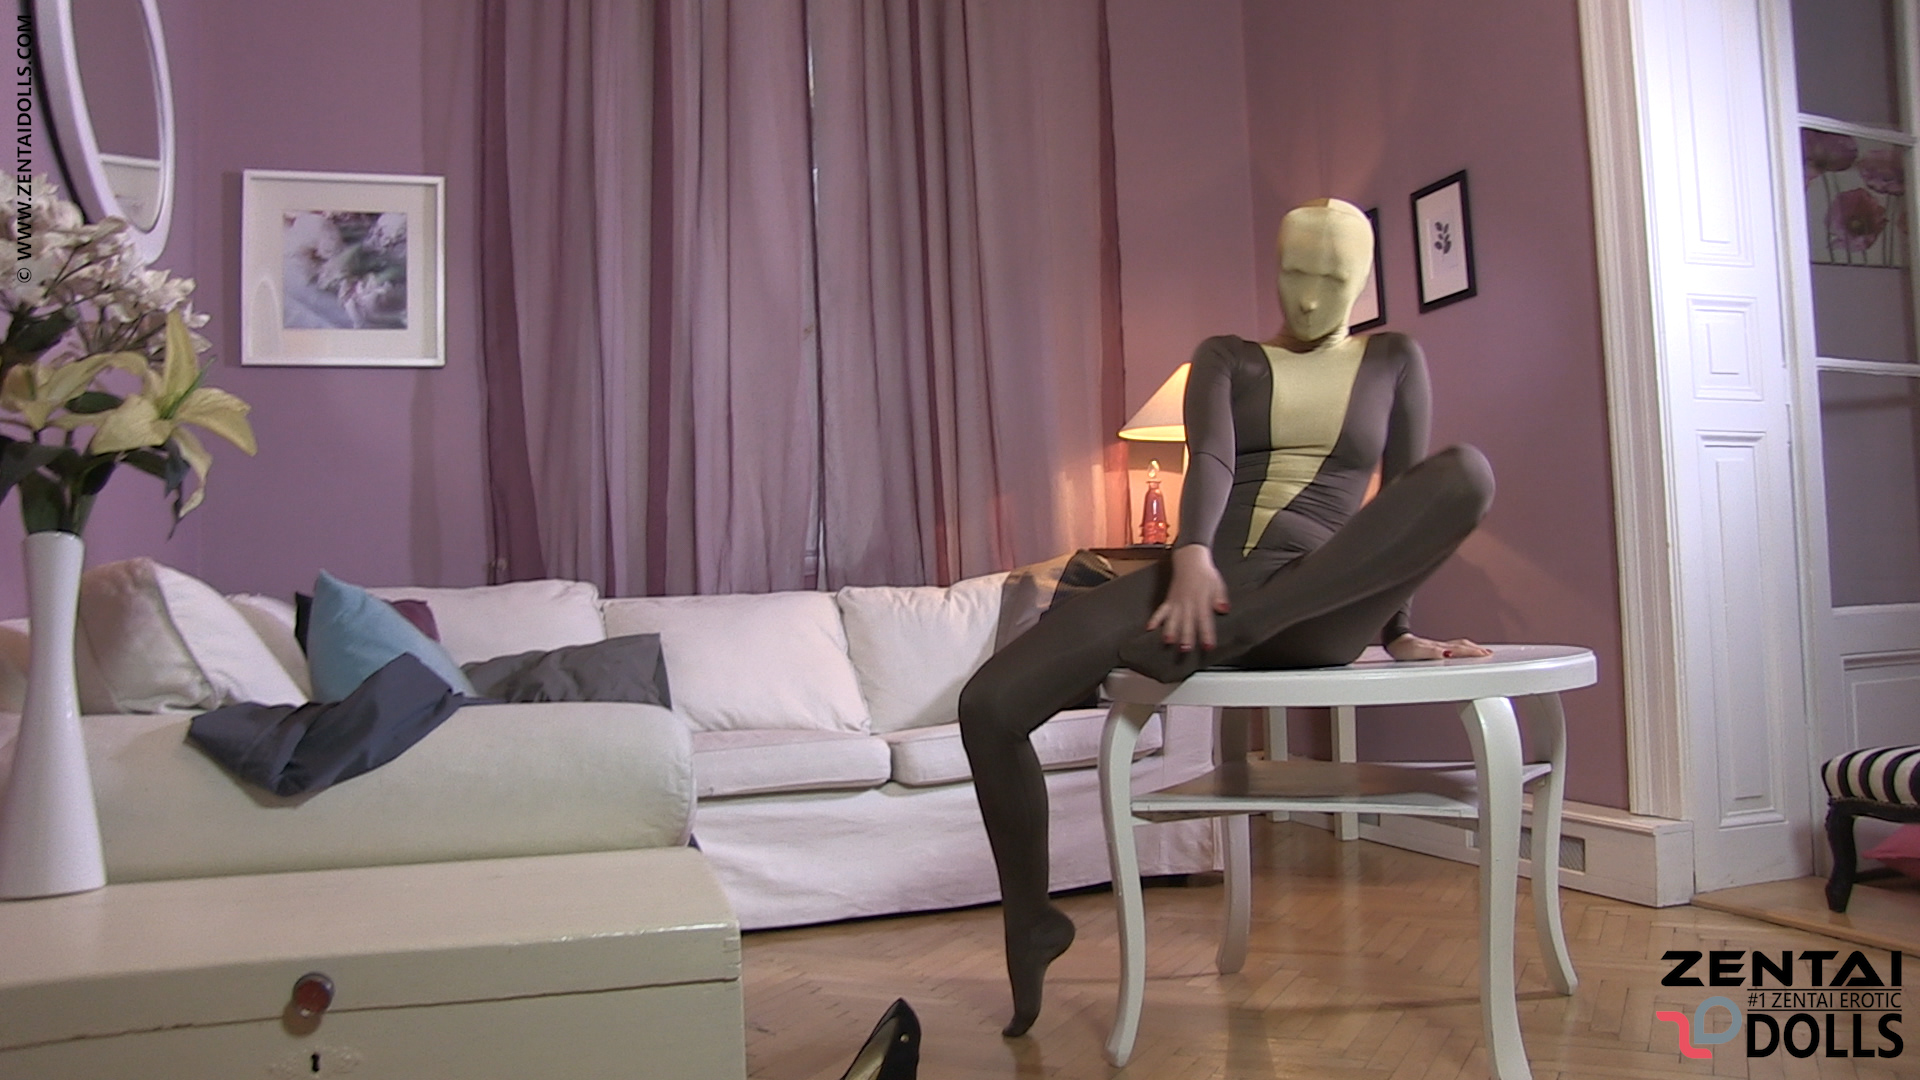 Double Layered Zentai Show